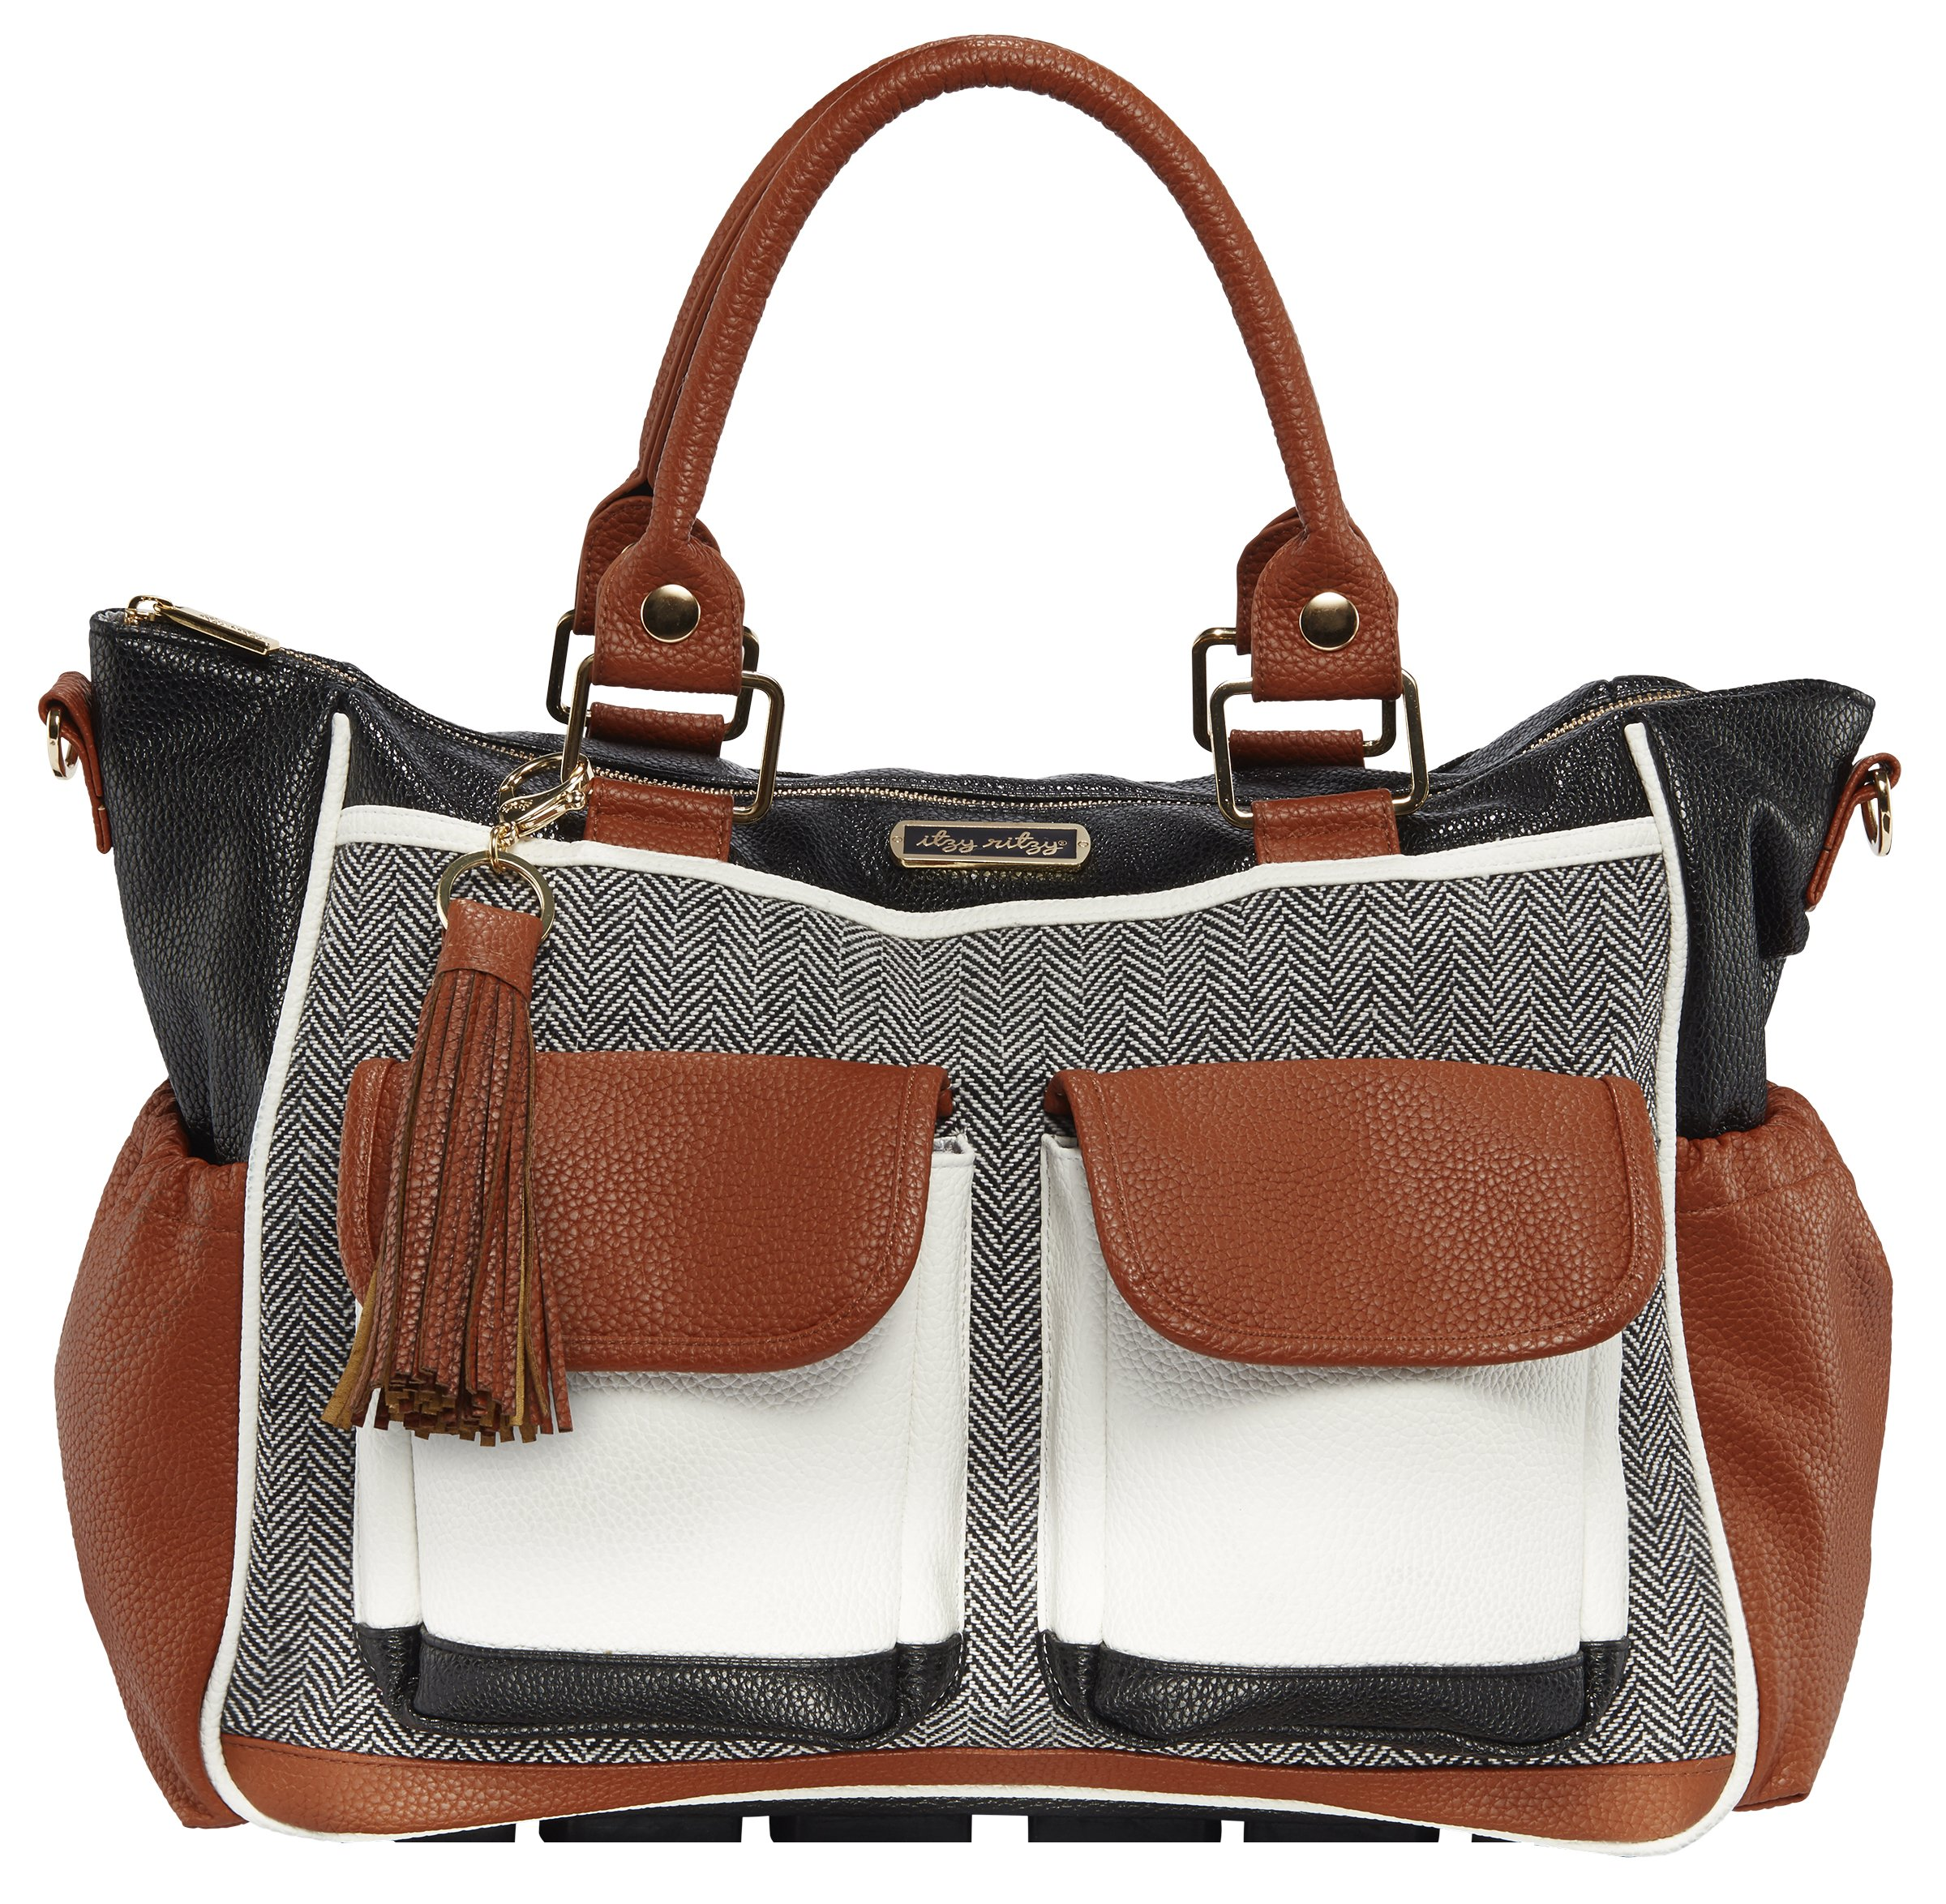 Itzy Ritzy Triple Threat Convertible Diaper Bag – Converts from a Tote to a Messenger Bag to a Backpack Diaper Bag; Includes 13 Total Pockets, Matching Stroller Straps & Changing Pad, Coffee & Cream